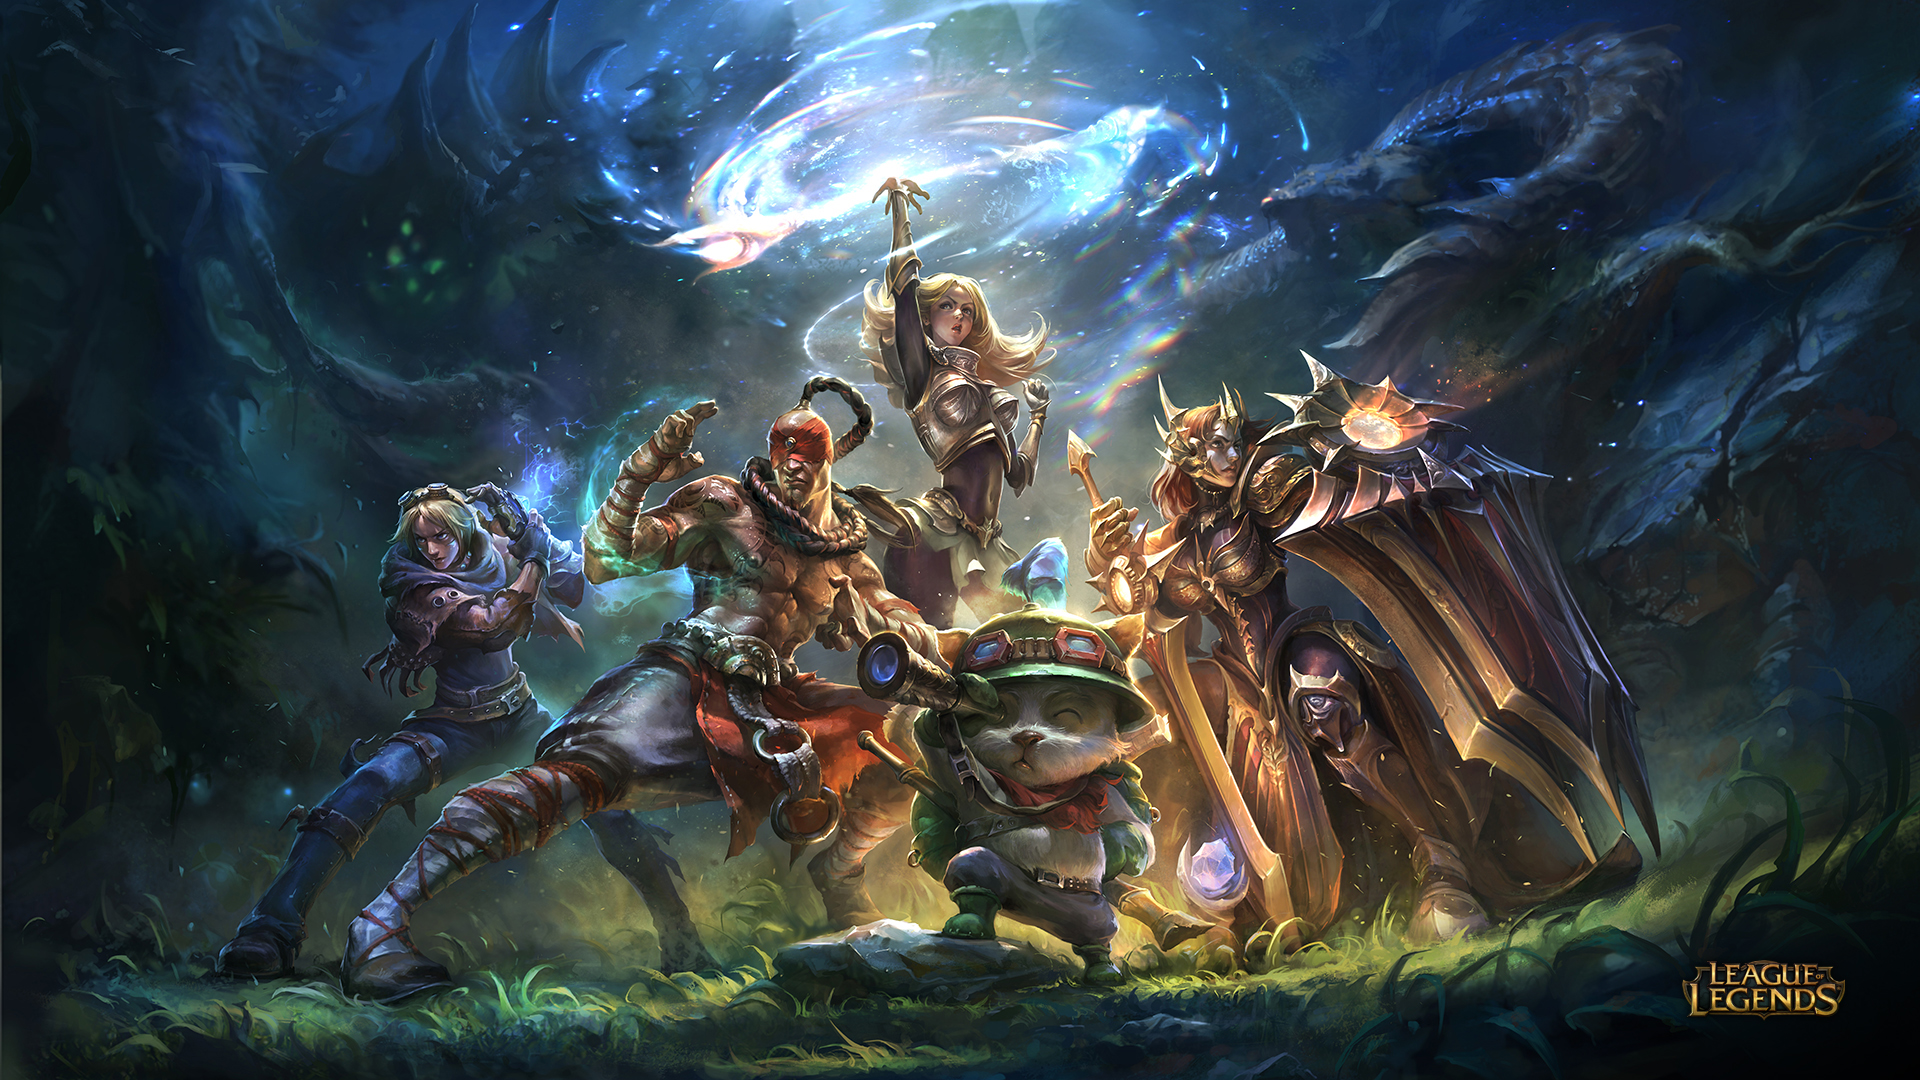 http://ru.leagueoflegends.com/sites/default/files/upload/art/teambuilder-wallpaper.jpg